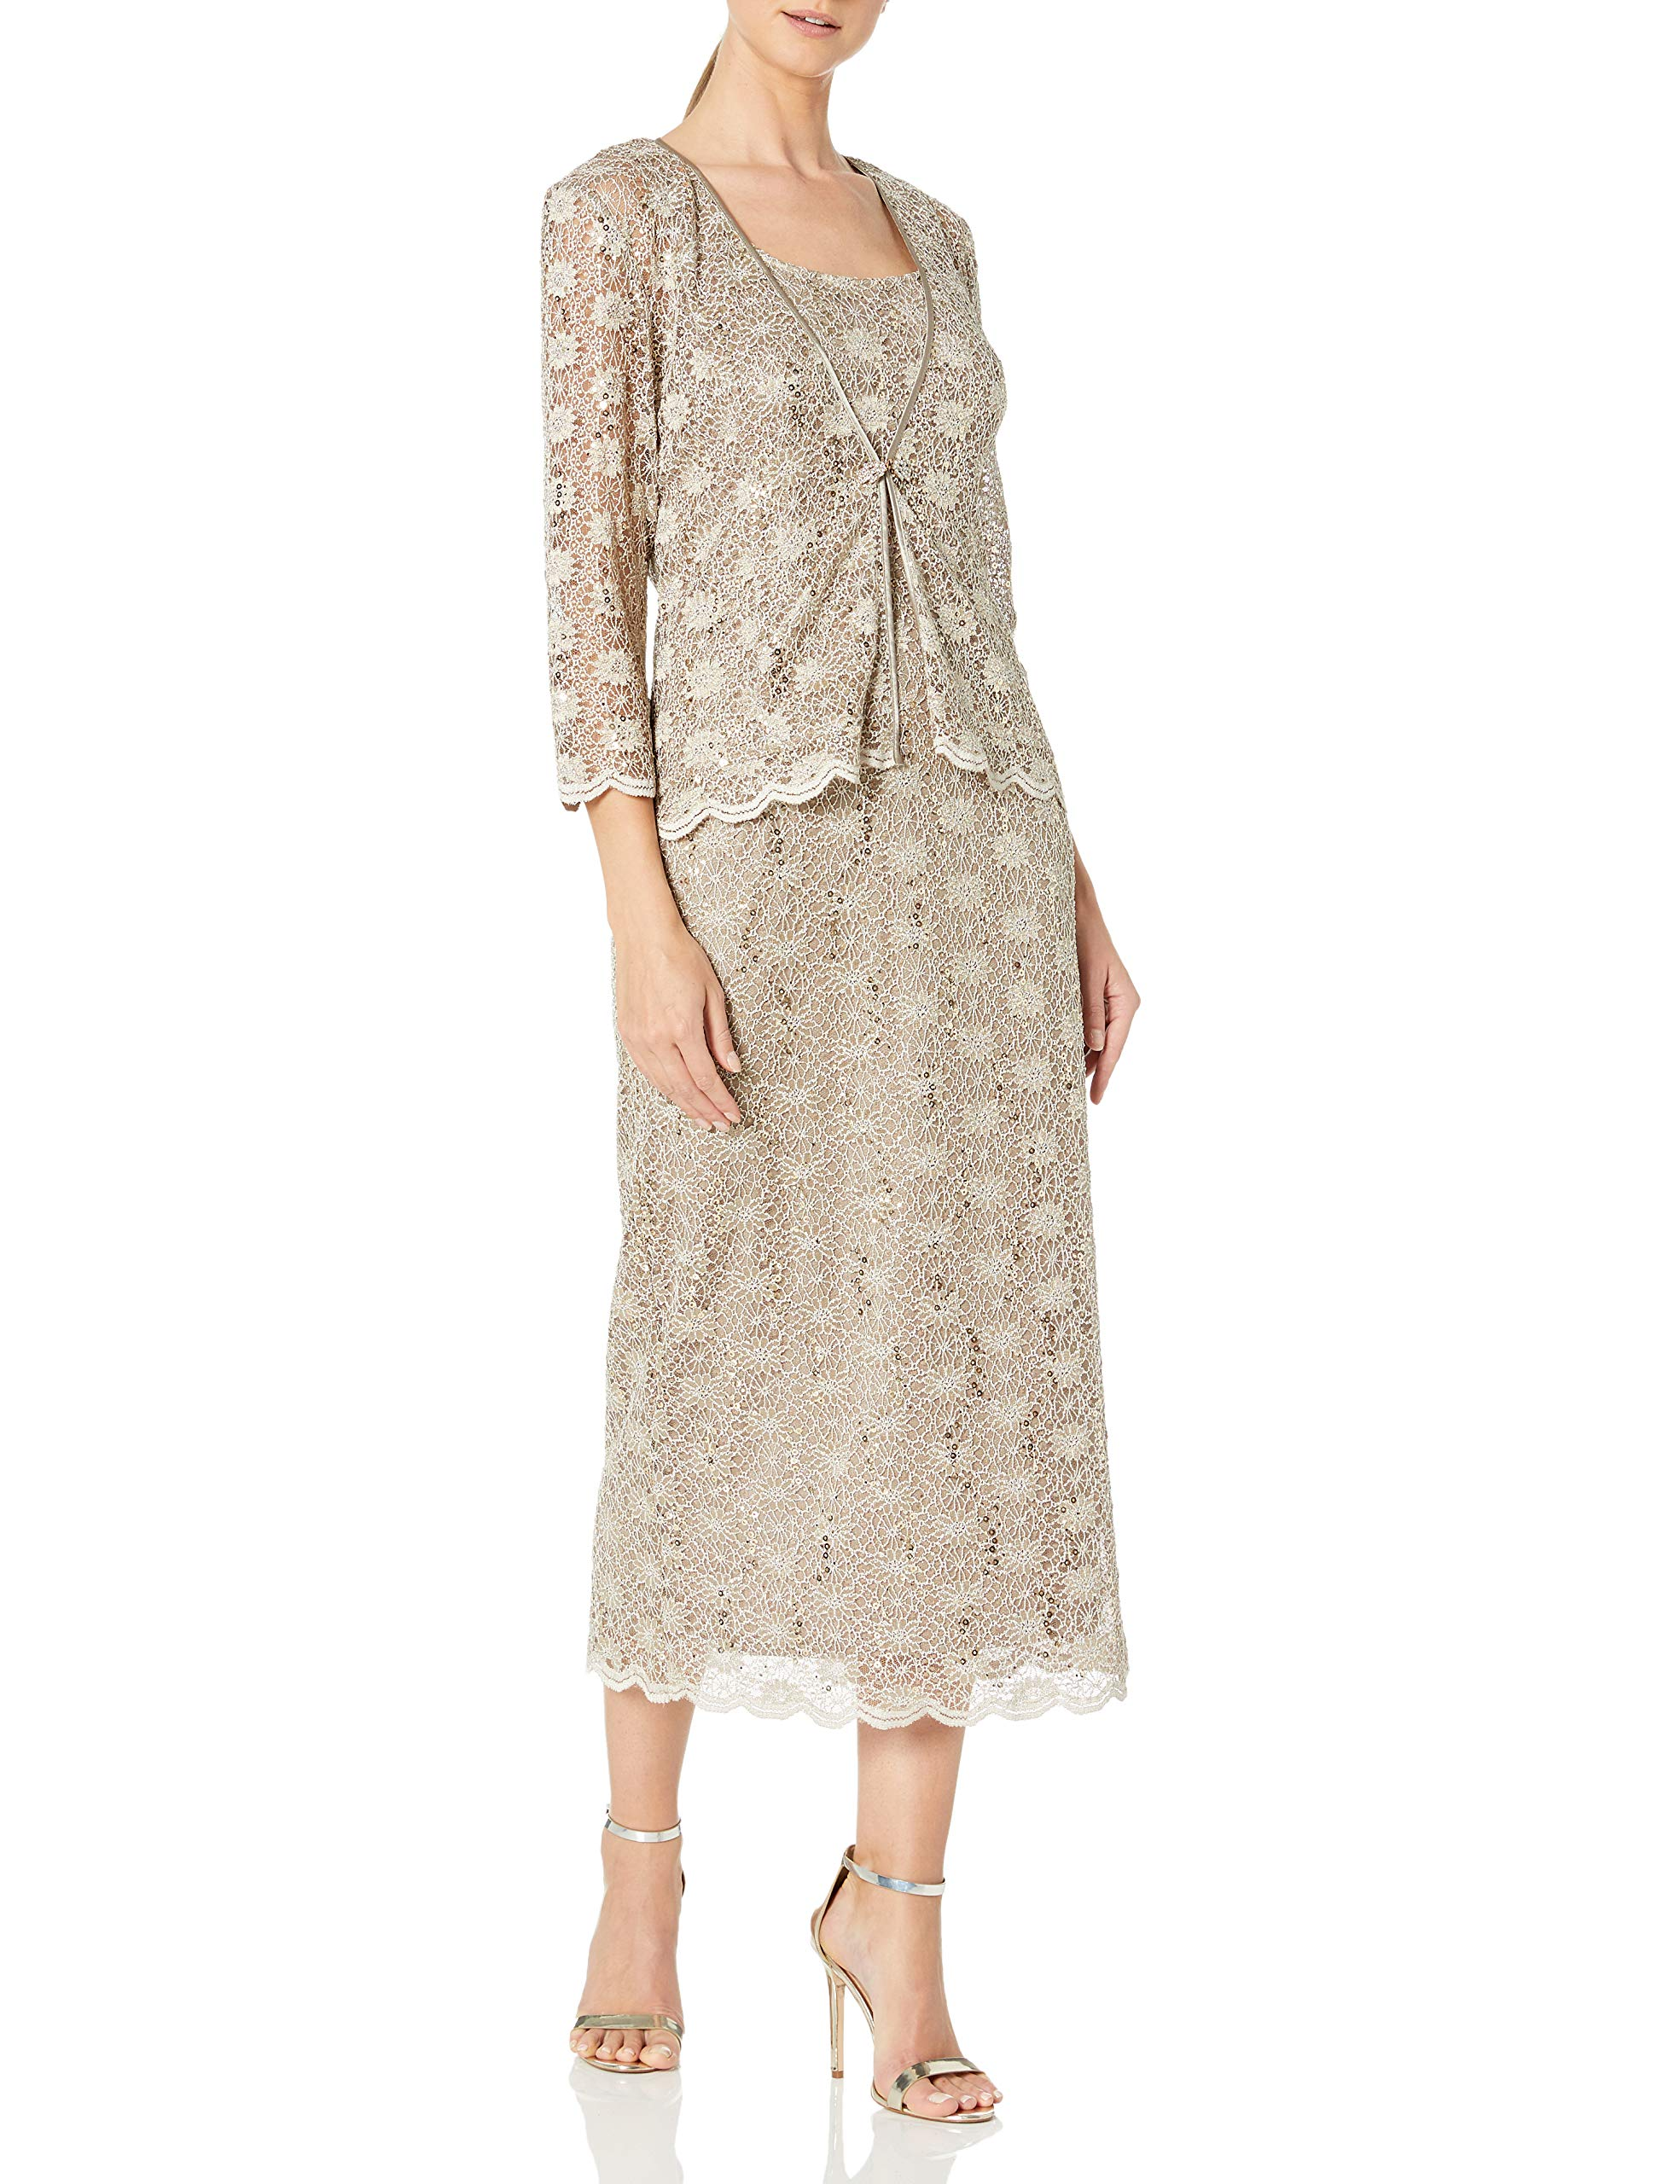 Mother Of The Bride Dresses - Women's 2 Piece Lace Swing Jacket Dress